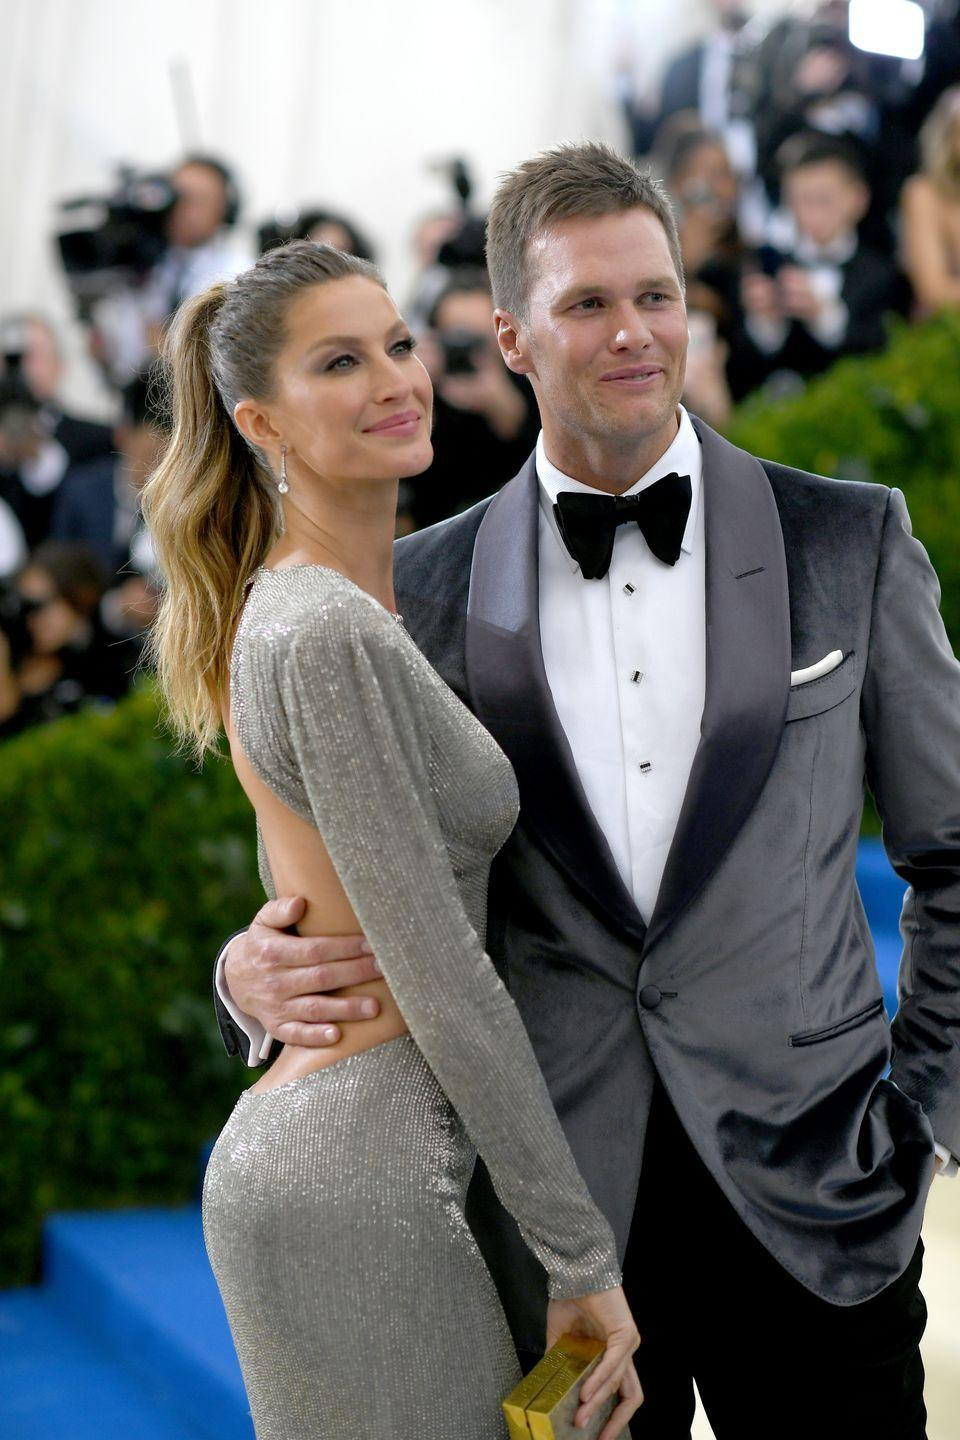 """<p>The model and quarterback met through a mutual friend who decided to play matchmaker.</p><p>""""This friend told me he knew a girl version of me,"""" the NFL player told <a href=""""http://men.style.com/details/features/landing?id=content_10457"""" rel=""""nofollow noopener"""" target=""""_blank"""" data-ylk=""""slk:Details back in 2009"""" class=""""link rapid-noclick-resp""""><em>Details</em> back in 2009</a>. </p><p>The sparks that flew were mutual. """"I knew Tom was the one straightaway. I could see it in his eyes that he was a man with integrity who believes in the same things I do,"""" Bündchen told <a href=""""http://www.vogue.co.uk/article/gisele-bundchen-british-vogue-cover-march-2015"""" rel=""""nofollow noopener"""" target=""""_blank"""" data-ylk=""""slk:Vogue"""" class=""""link rapid-noclick-resp""""><em>Vogue</em></a>.</p>"""